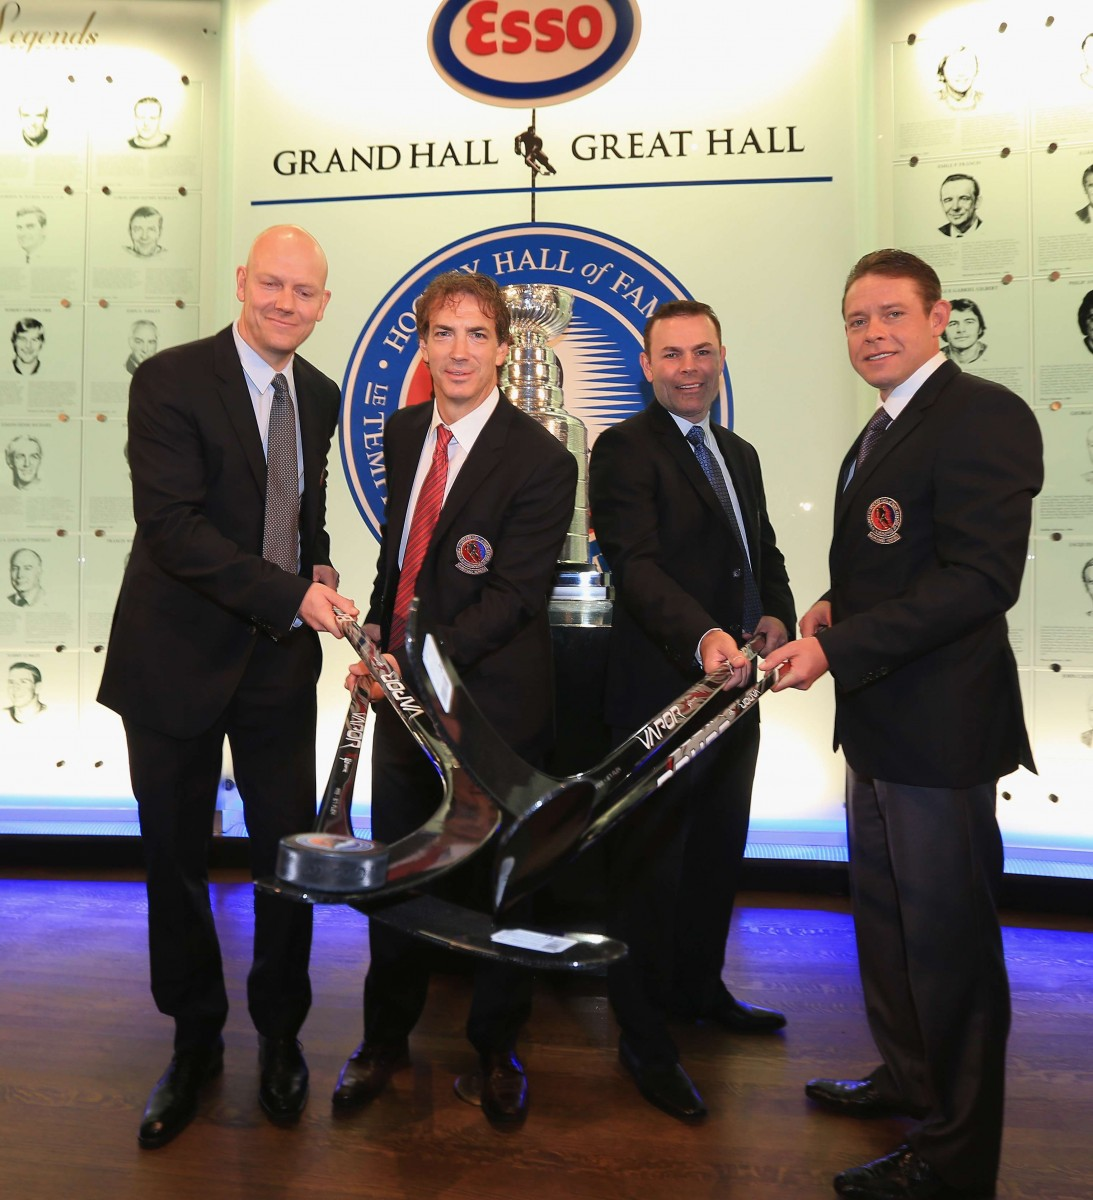 From left to right, Mats Sundin, Joe Sakic, Adam Oates, and Pavel Bure pose at the Hockey Hall of Fame in Toronto on Nov. 12, 2012. All four were inducted into the Hall of Fame on Monday night. (Bruce Bennett/Getty Images)